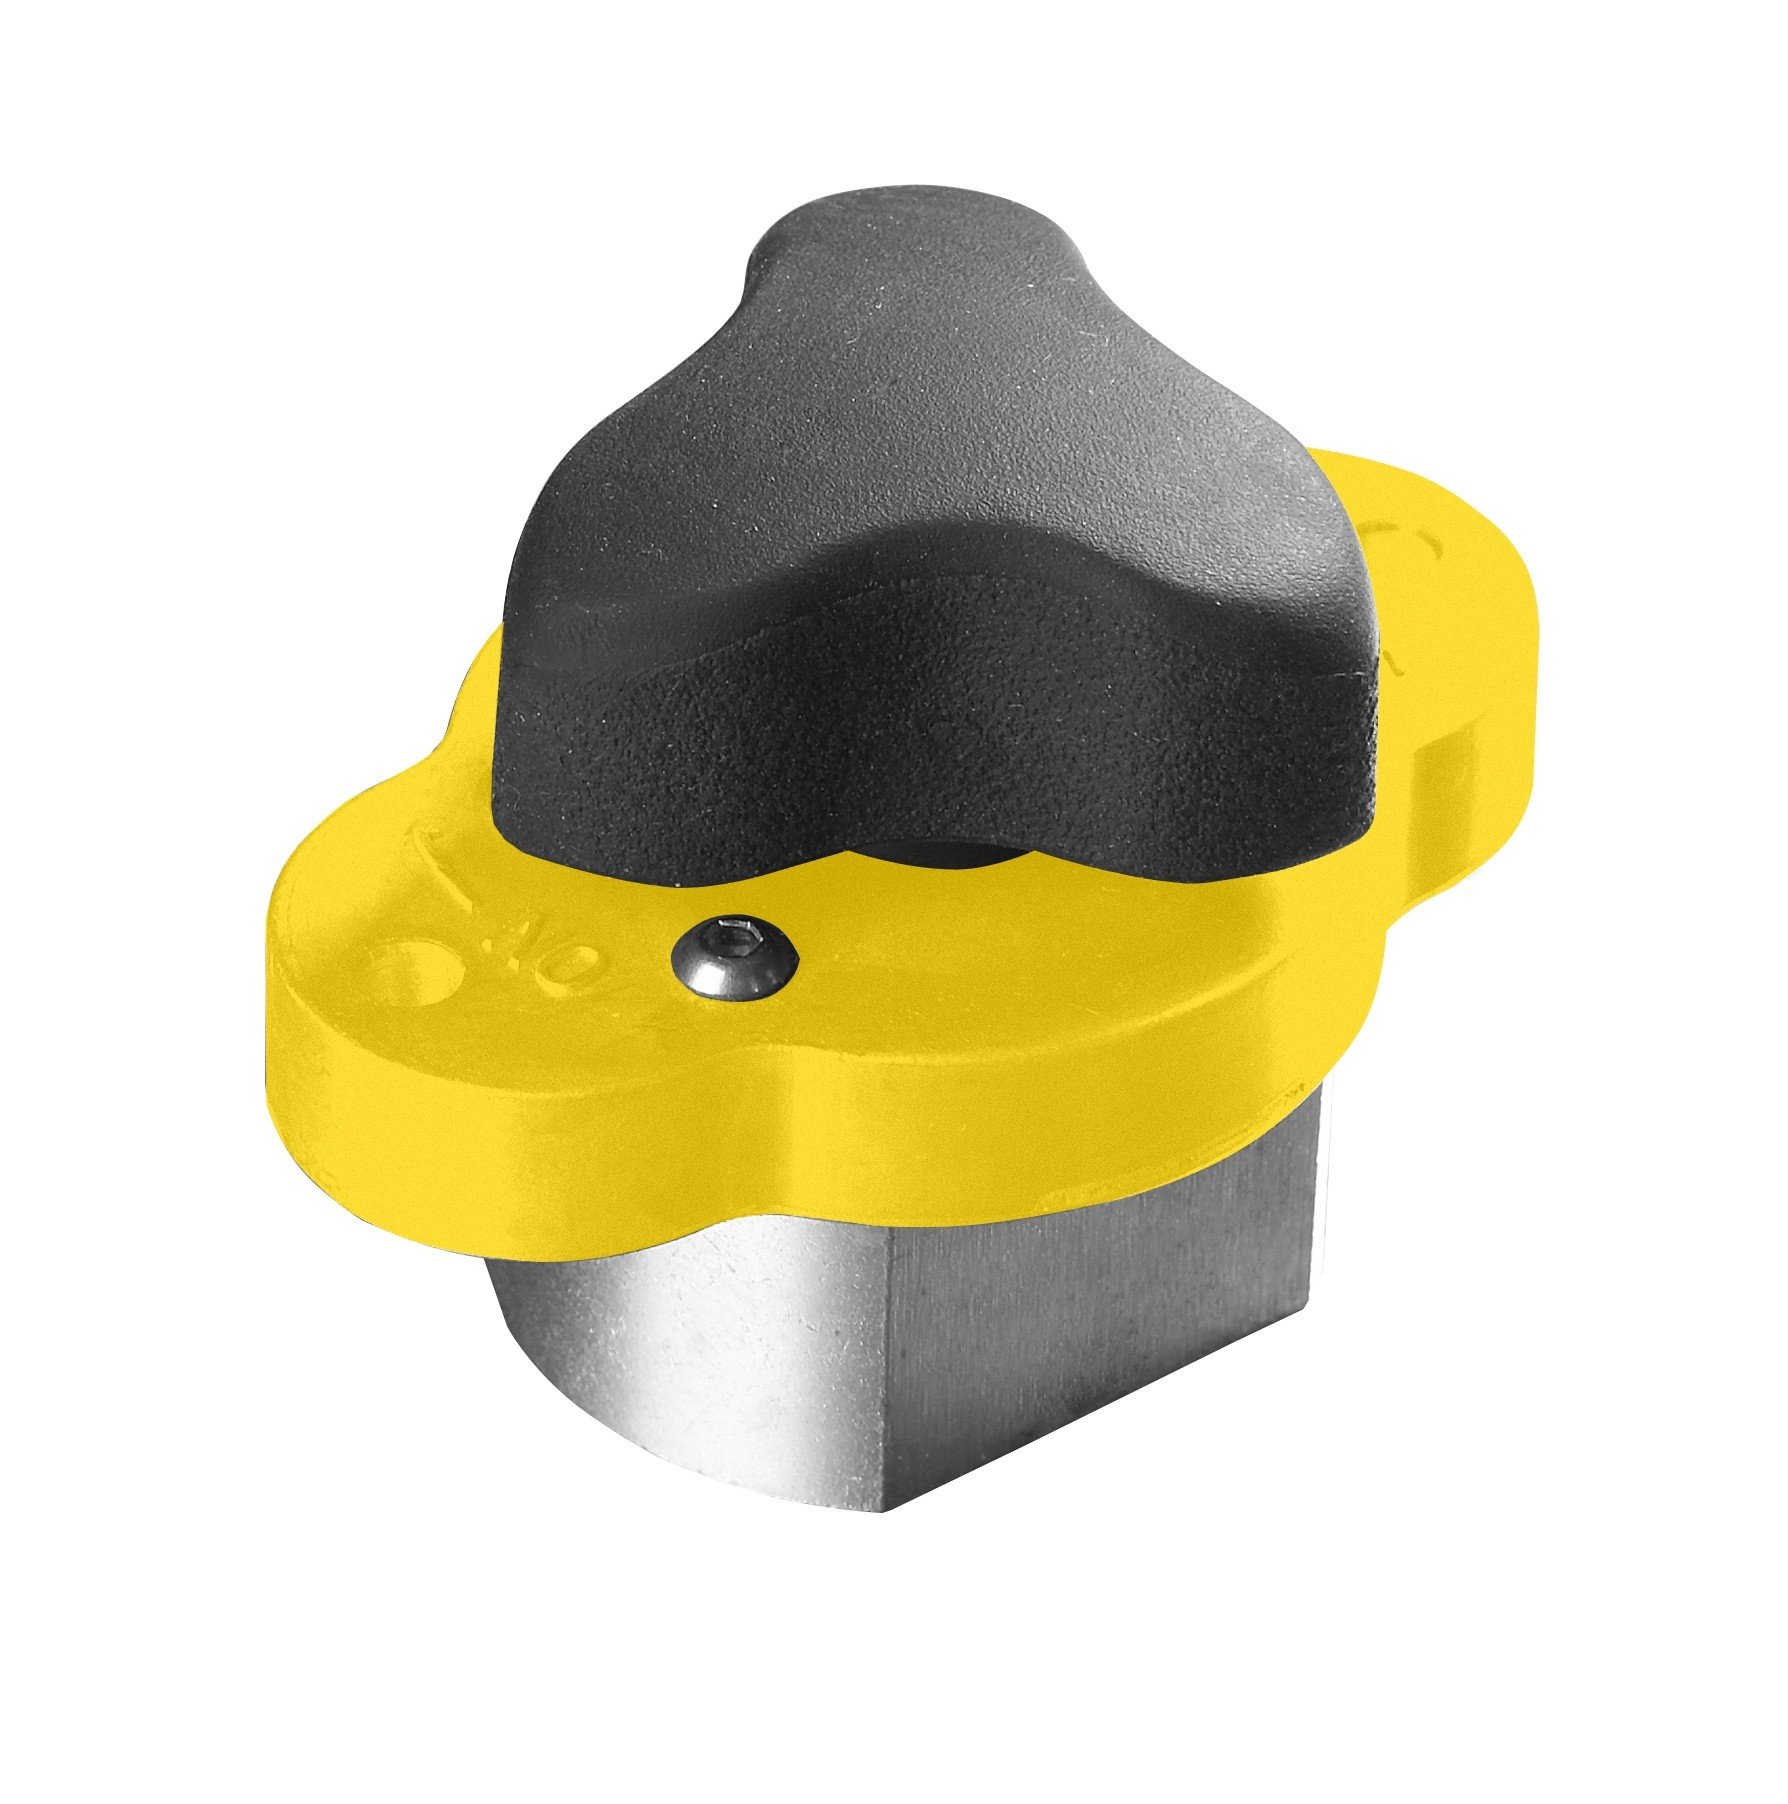 Magswitch MAGJIG 150 MagJig 150, Yellow/Silver by Magswitch